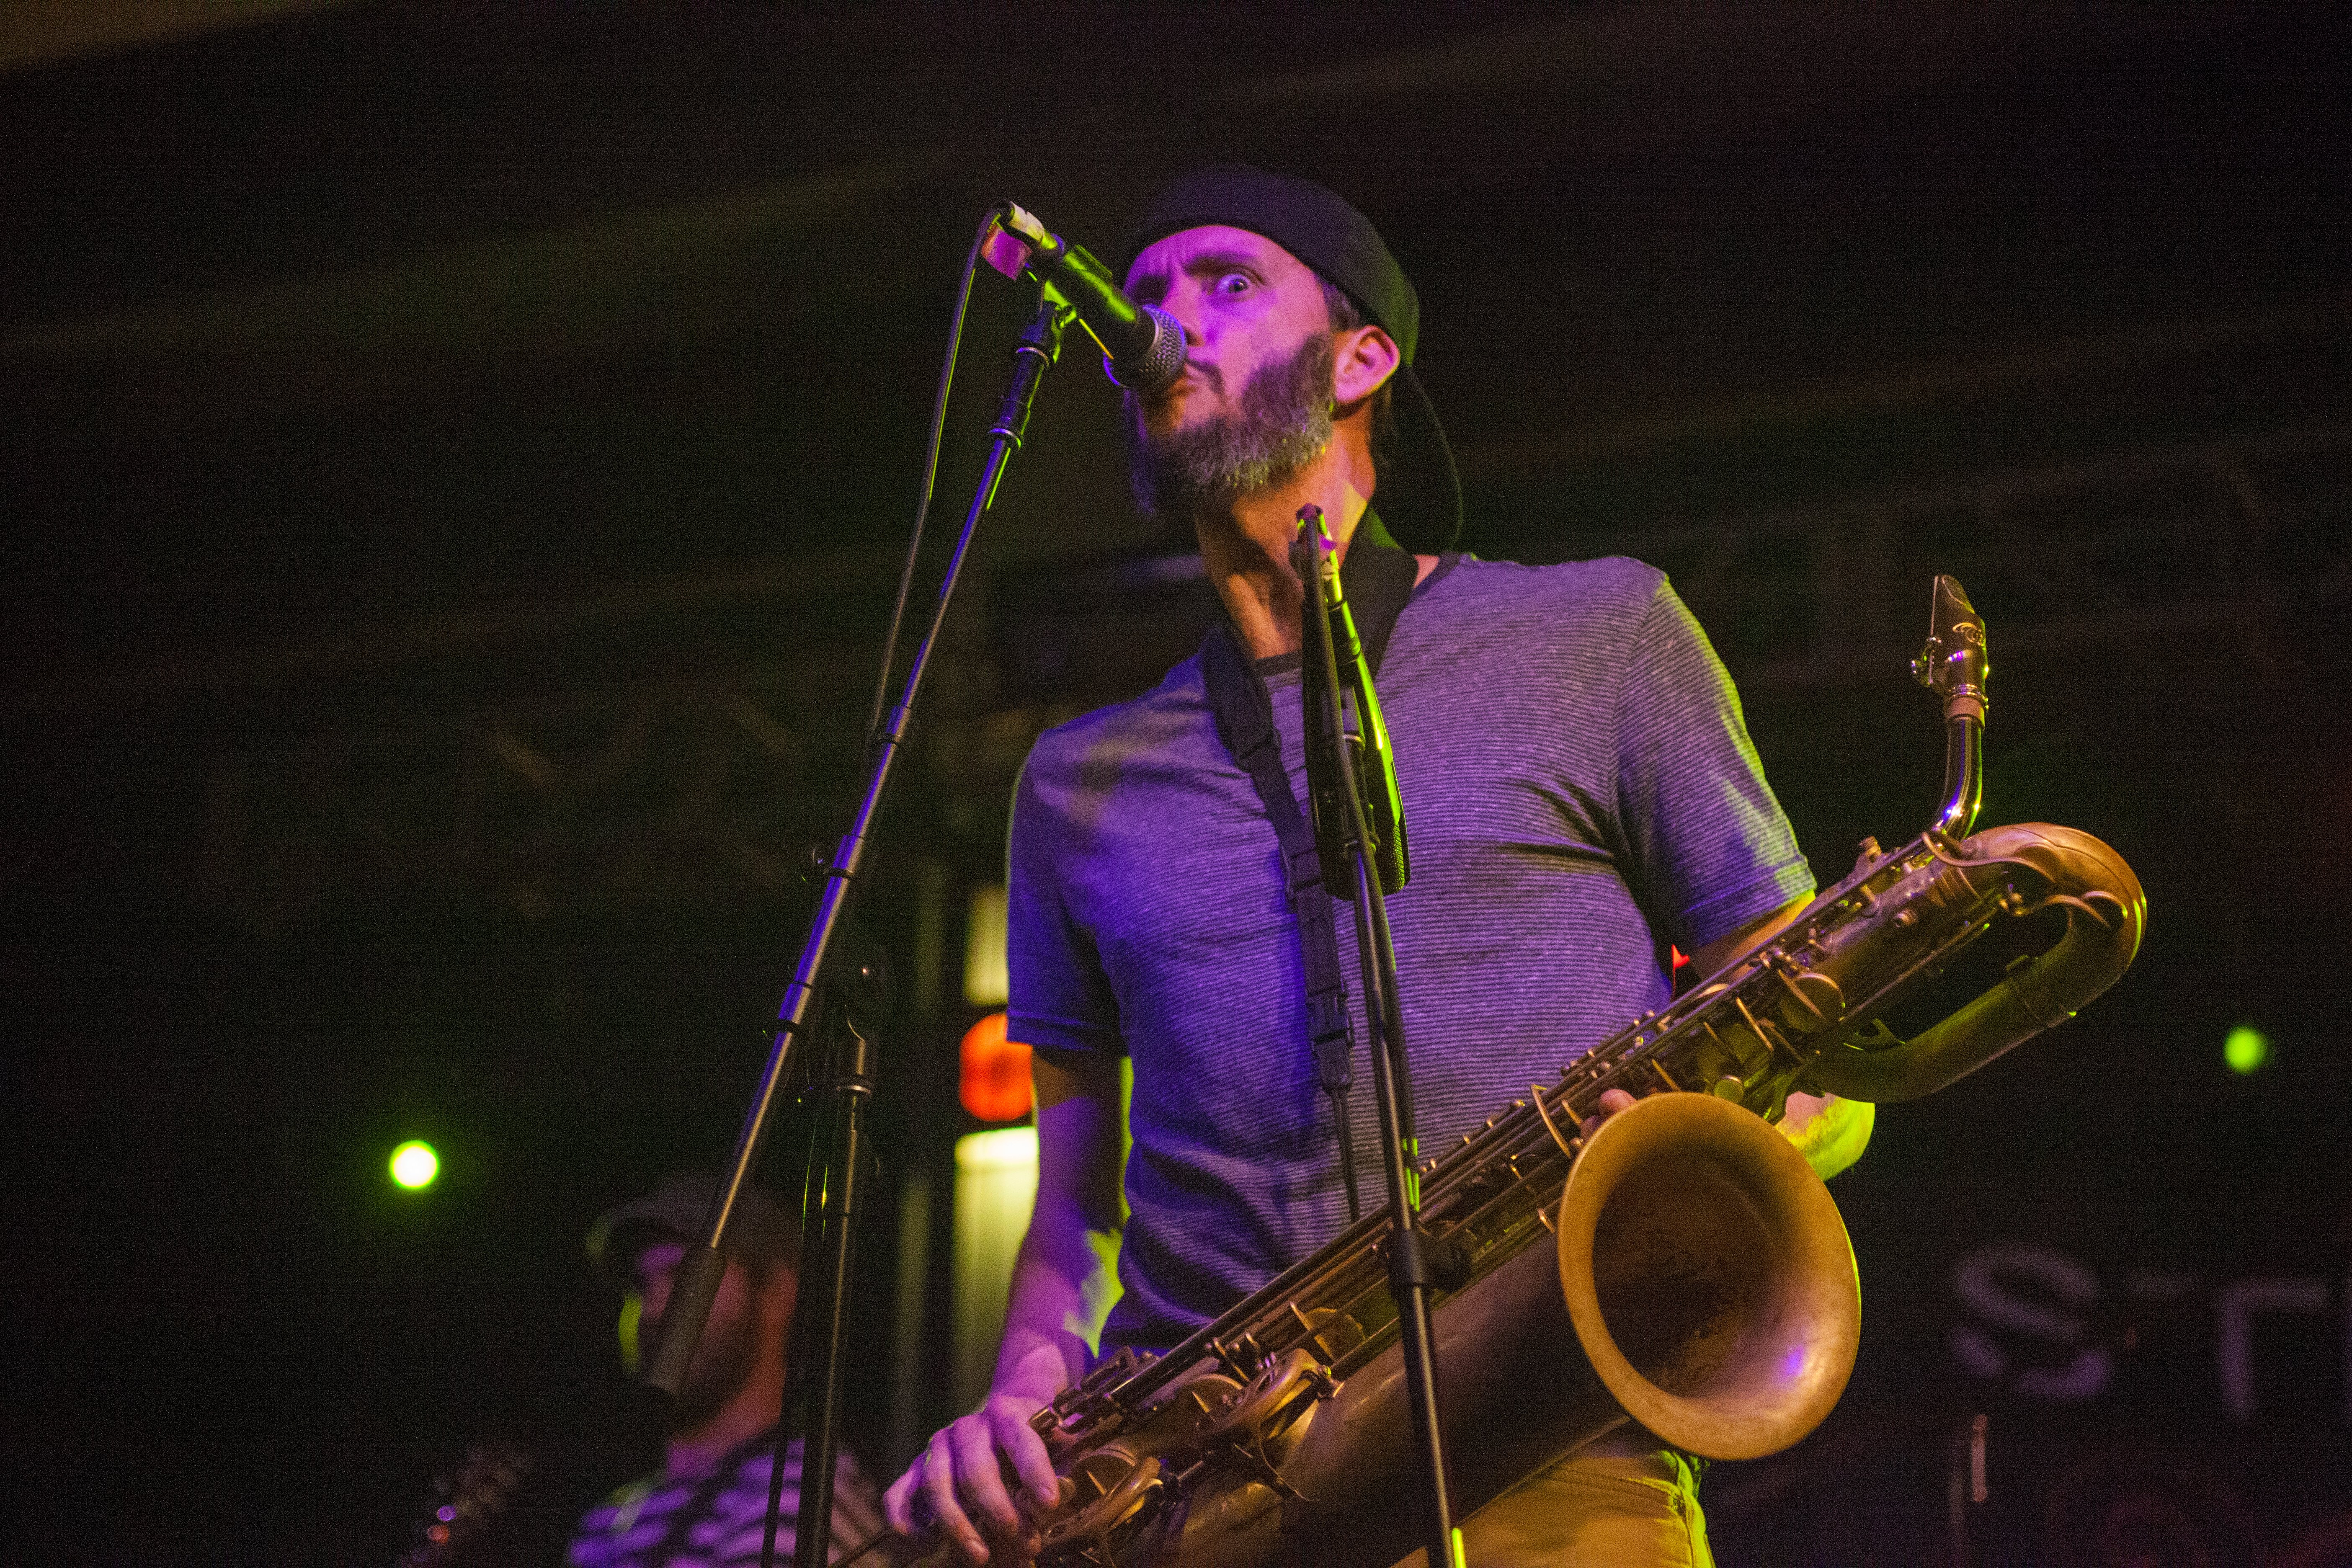 Mike Brown, above, joined the band in 2005. He graduated from New Jersey City University with a B.A. in music performance. KRYSTEN MASSA / THE STATESMAN